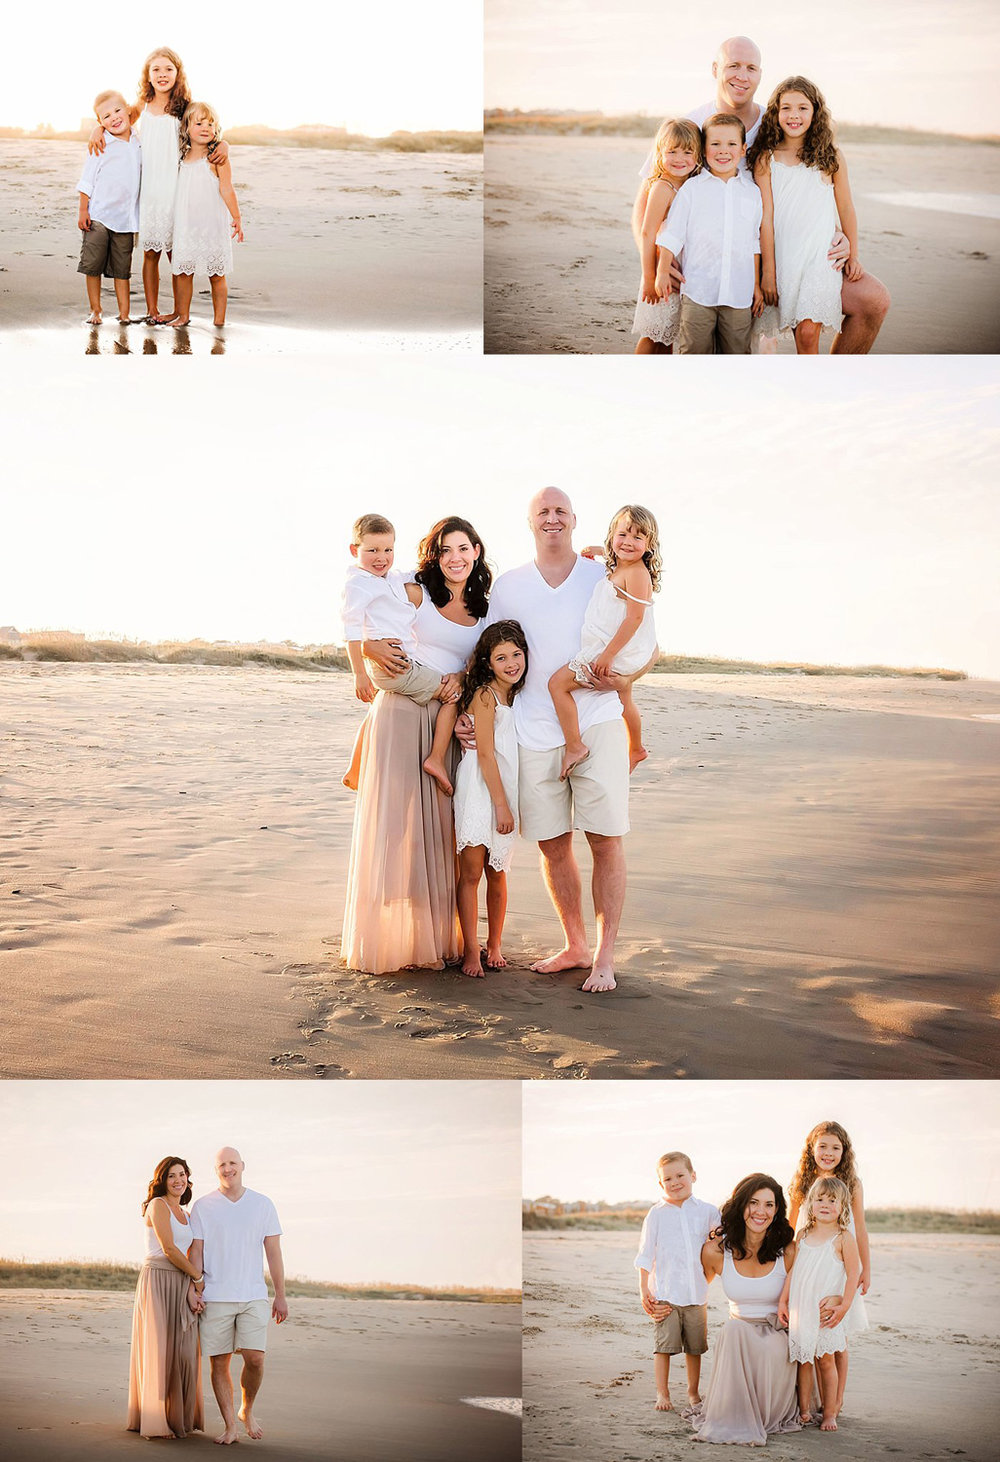 beach-photo-session-lifestyle-family-photos-by-virginia-beach-premiere-photographer-melissa-bliss-photography.jpg